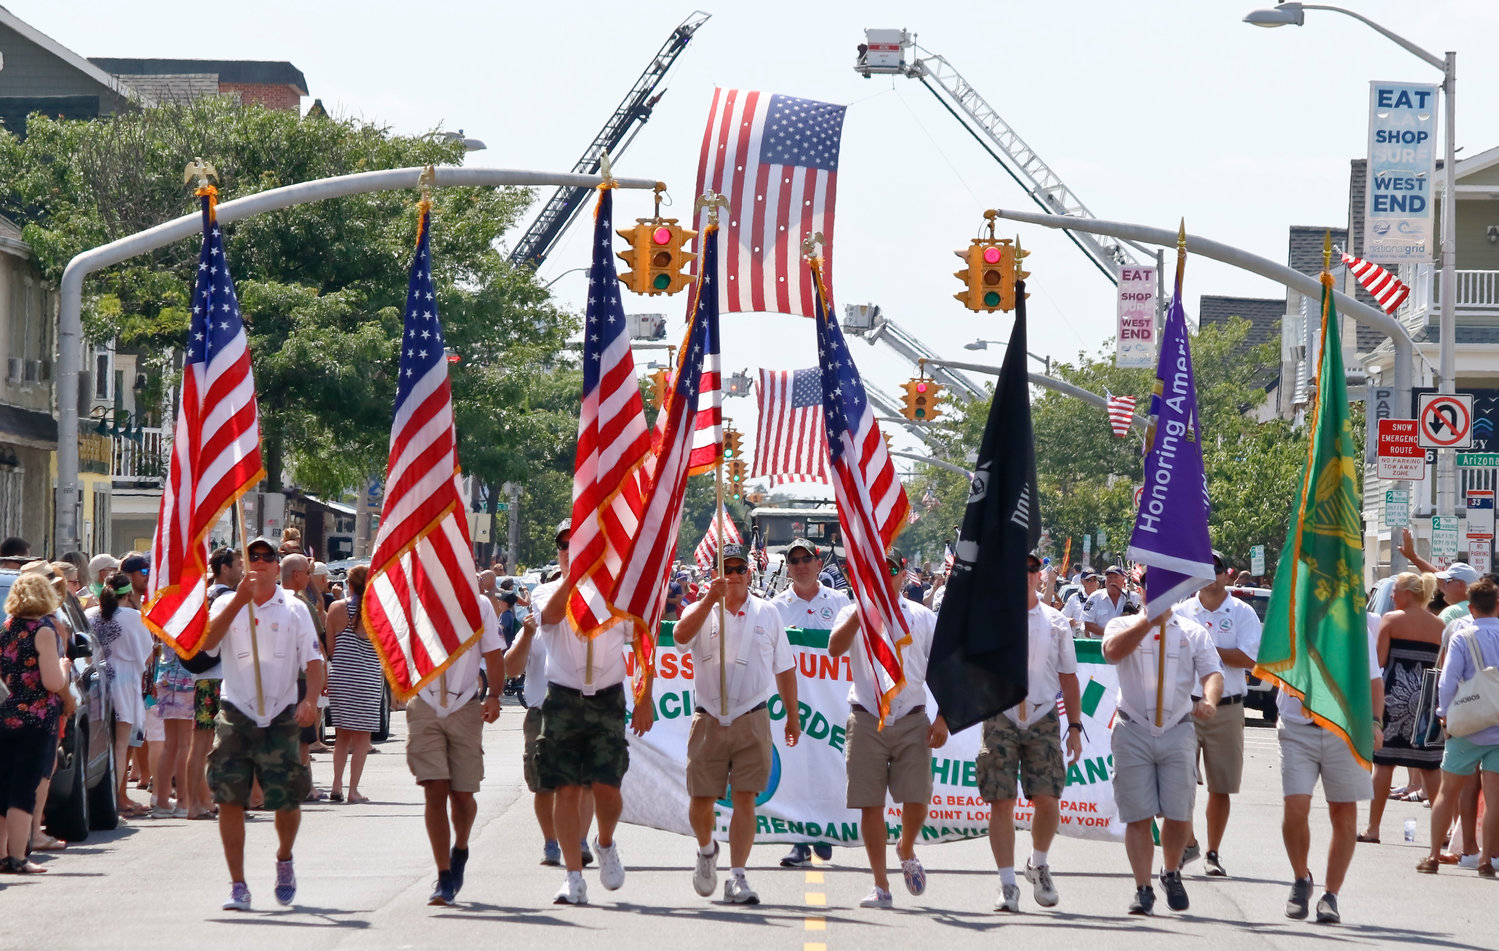 Local organizations like the Ancient Order of Hibernians marched down the parade route on West Beech Street.